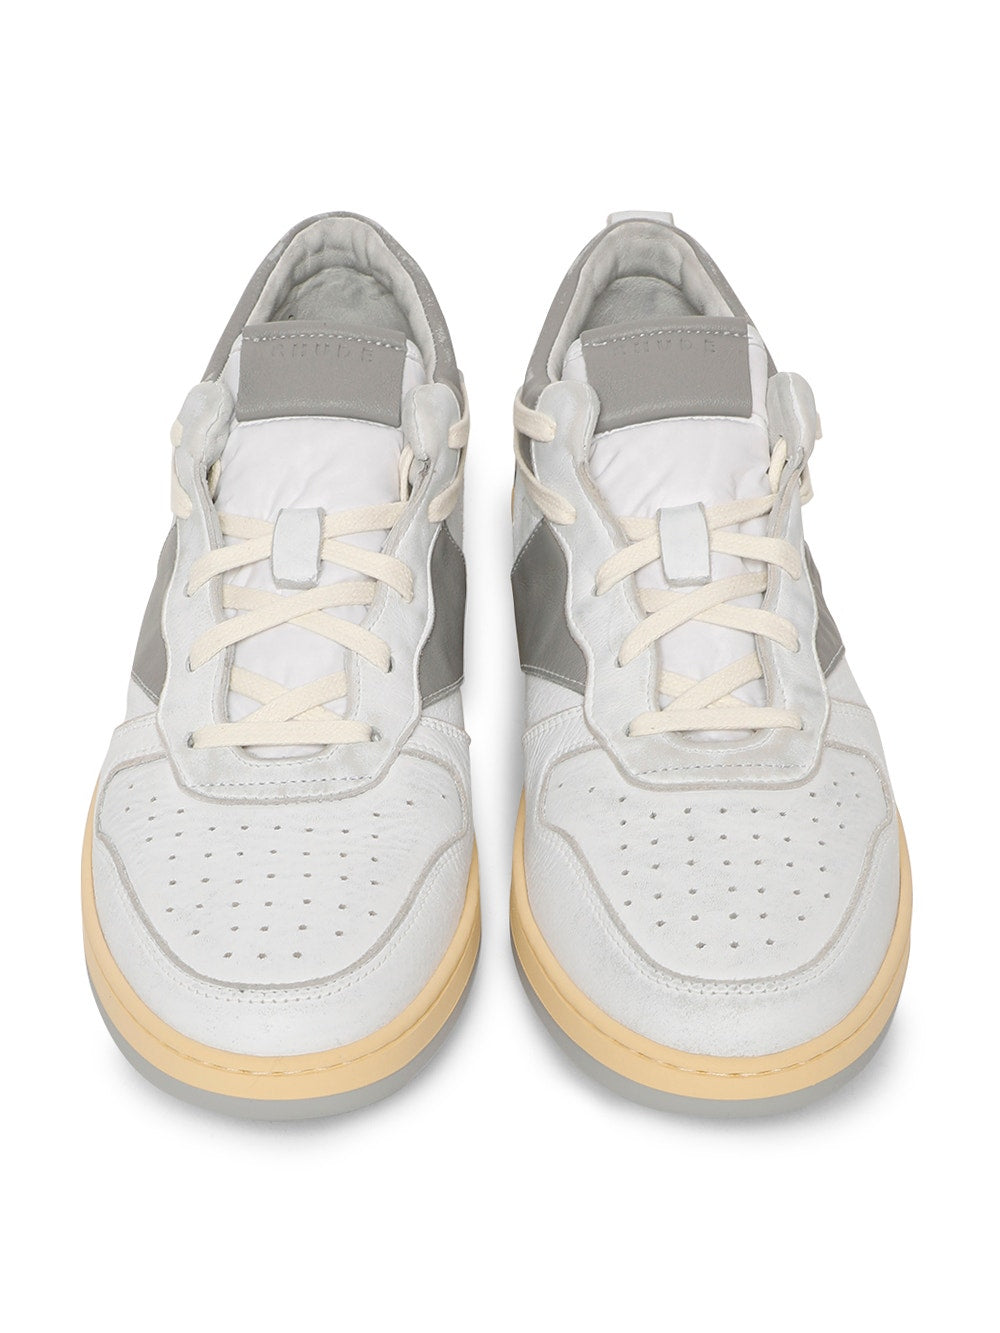 White & Gray Rhecess Low Top Sneakers